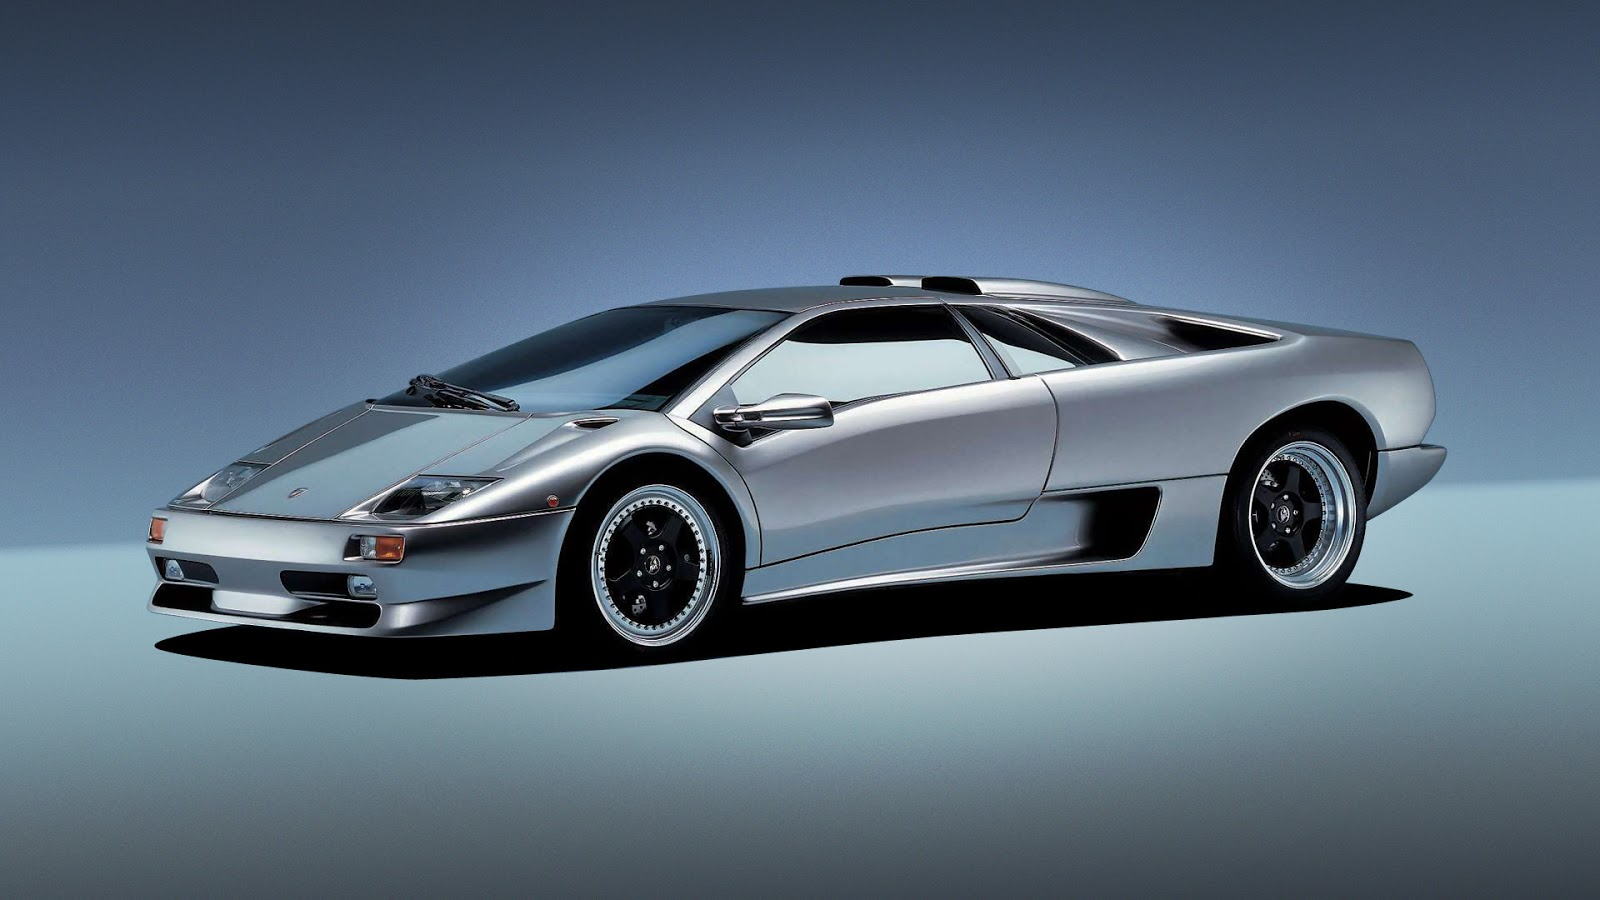 luxury lamborghini cars lamborghini diablo sv. Black Bedroom Furniture Sets. Home Design Ideas